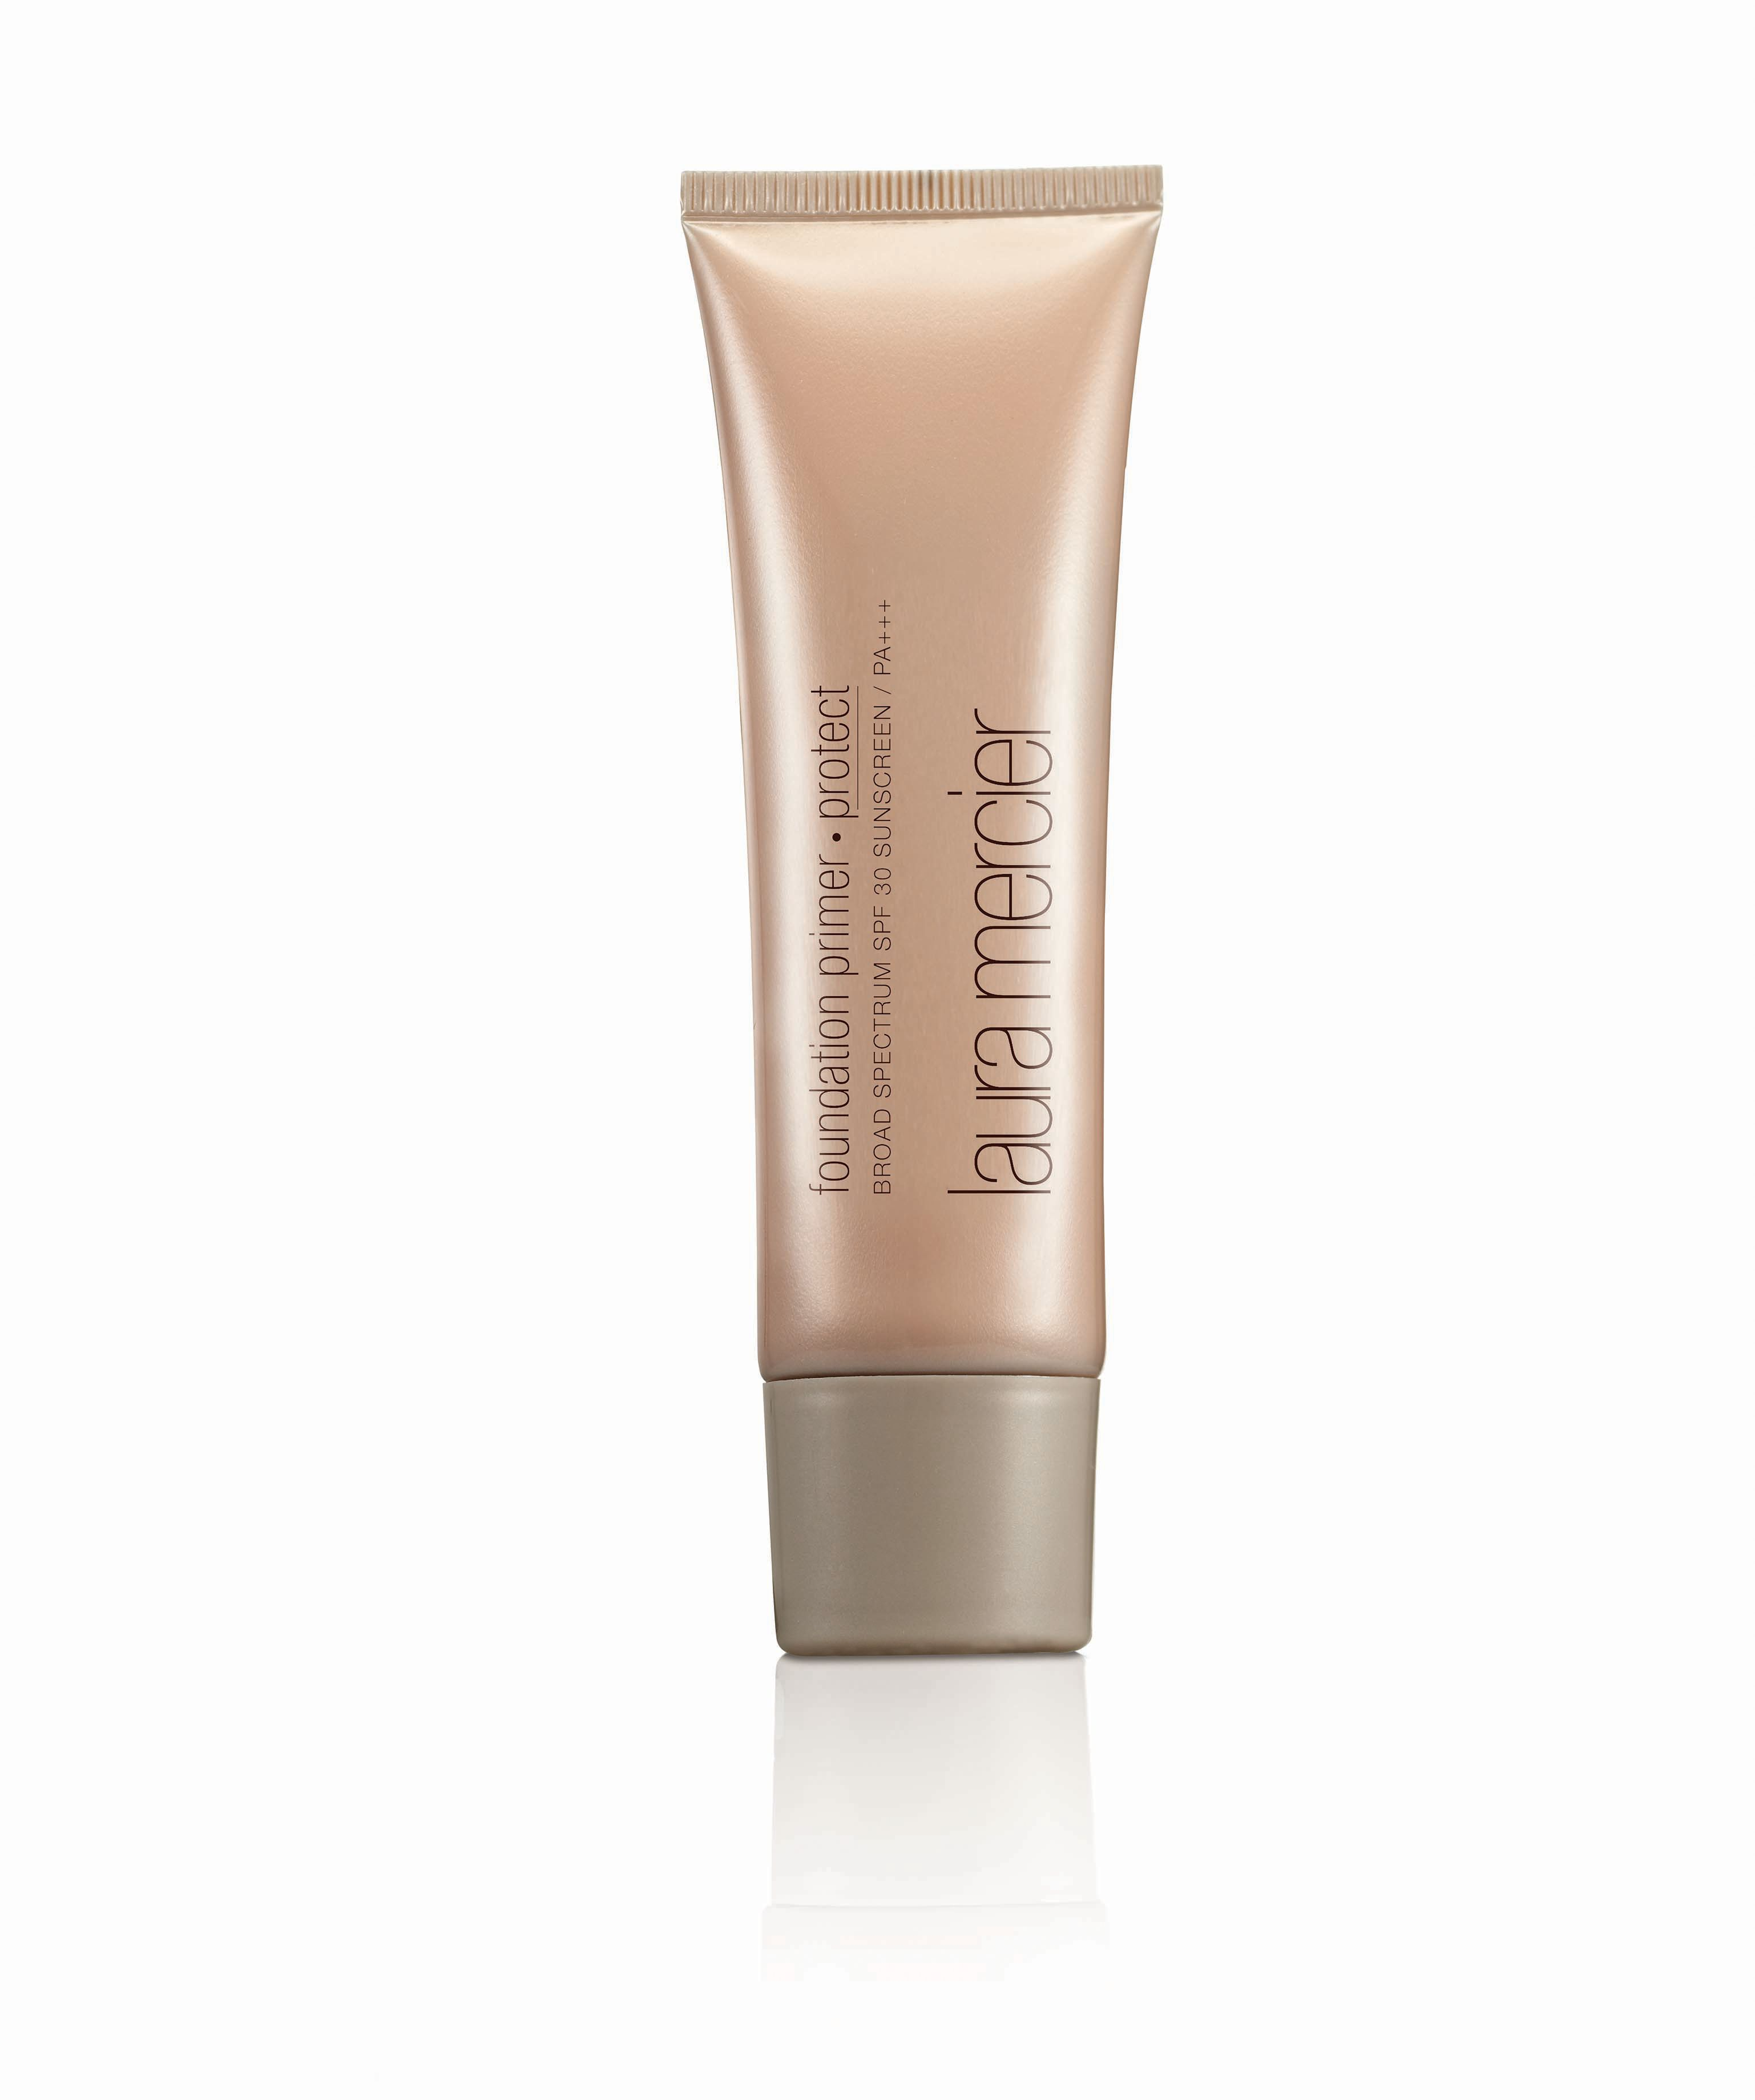 Foundation Primer - Protect SPF 30 UVB/UVA PA+++